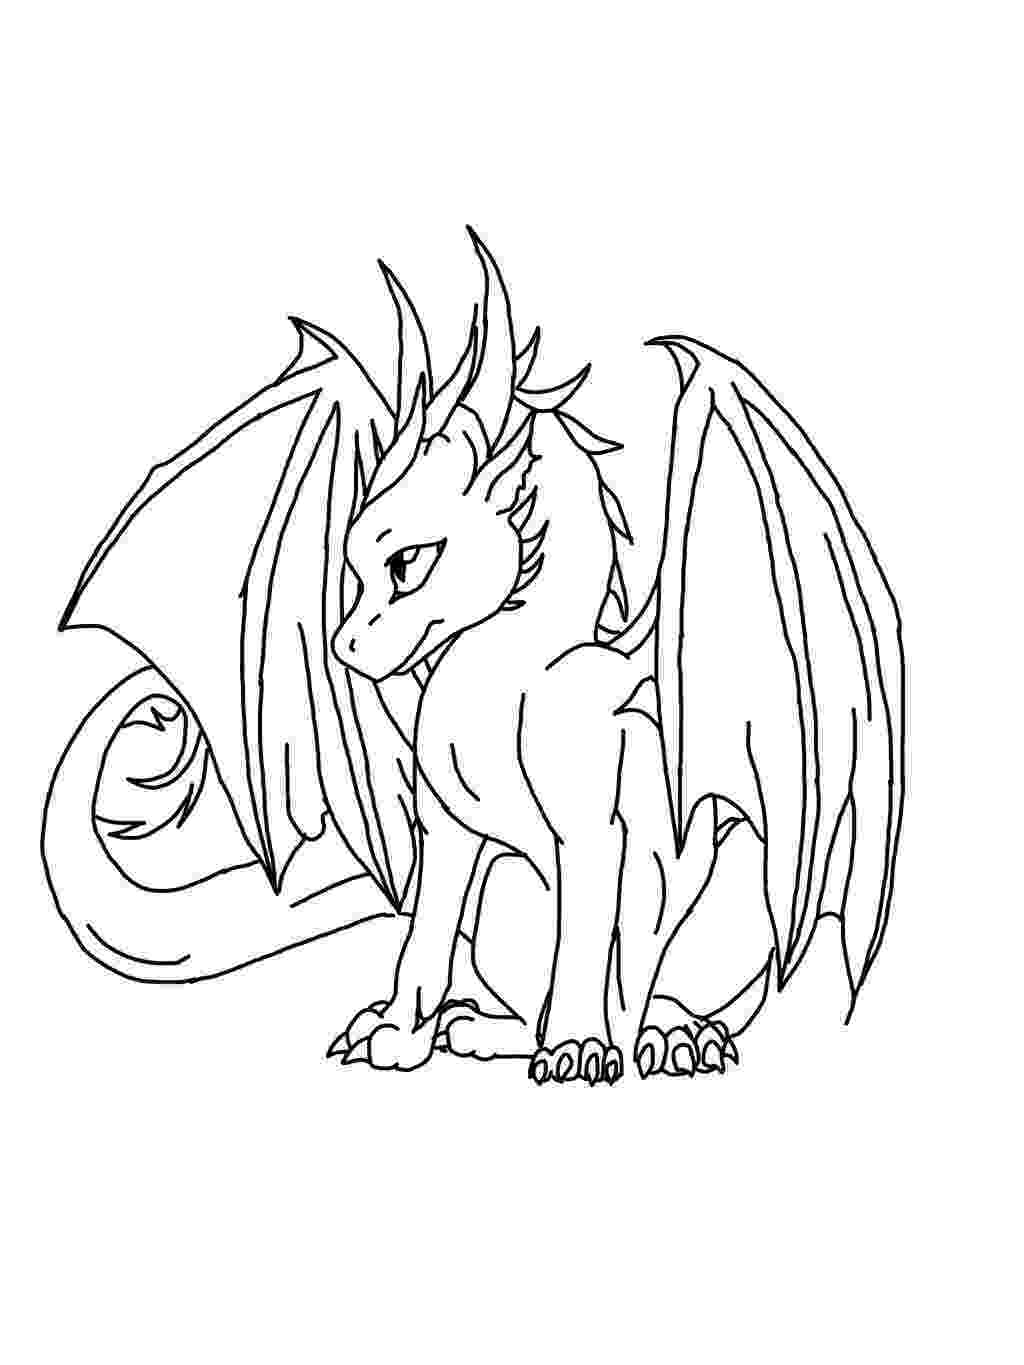 cool dragon pictures to color cool dragon coloring pages coloring home color cool pictures dragon to